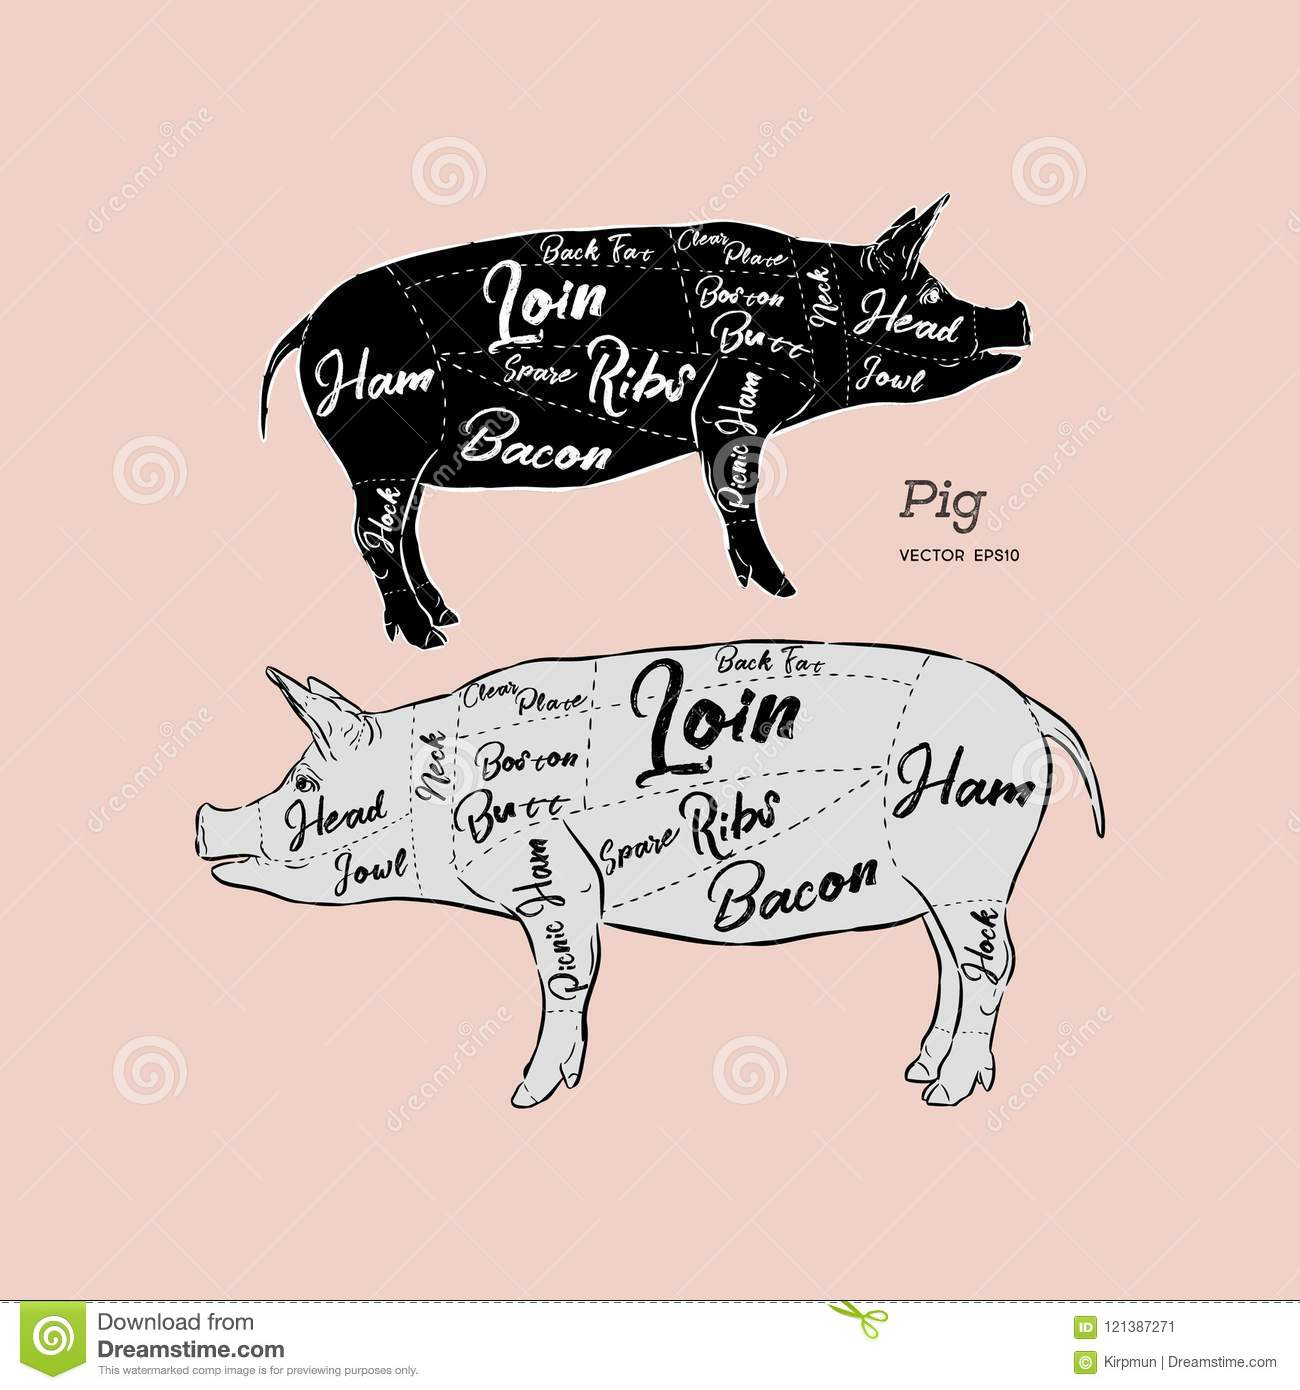 Pork Diagram | Scheme And Guide Pork Vintage Typographic Hand Drawn Vector